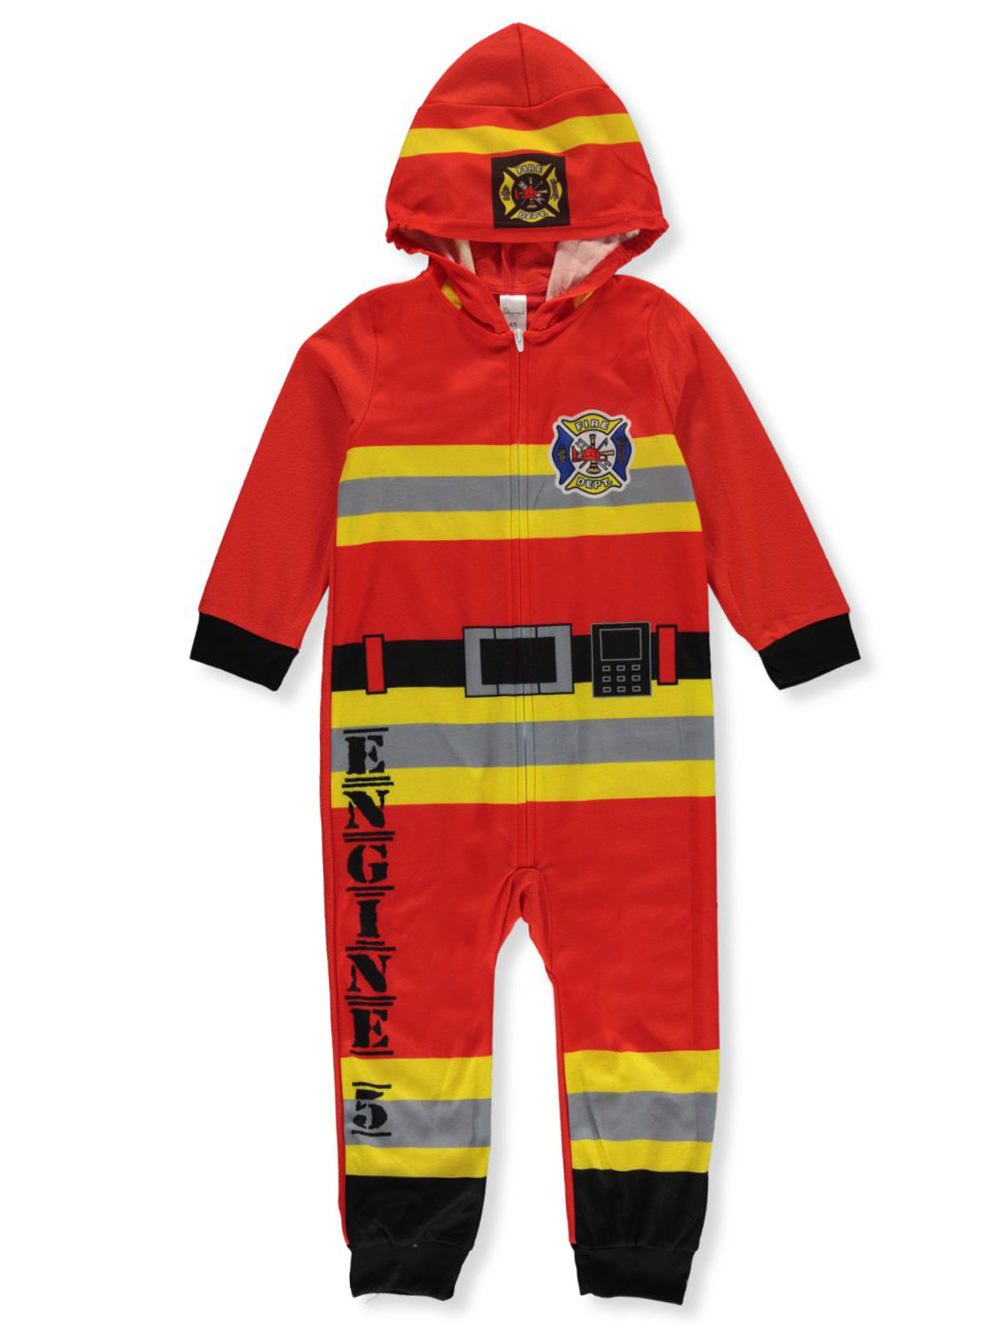 Sleepwear Hooded Pajama Suit